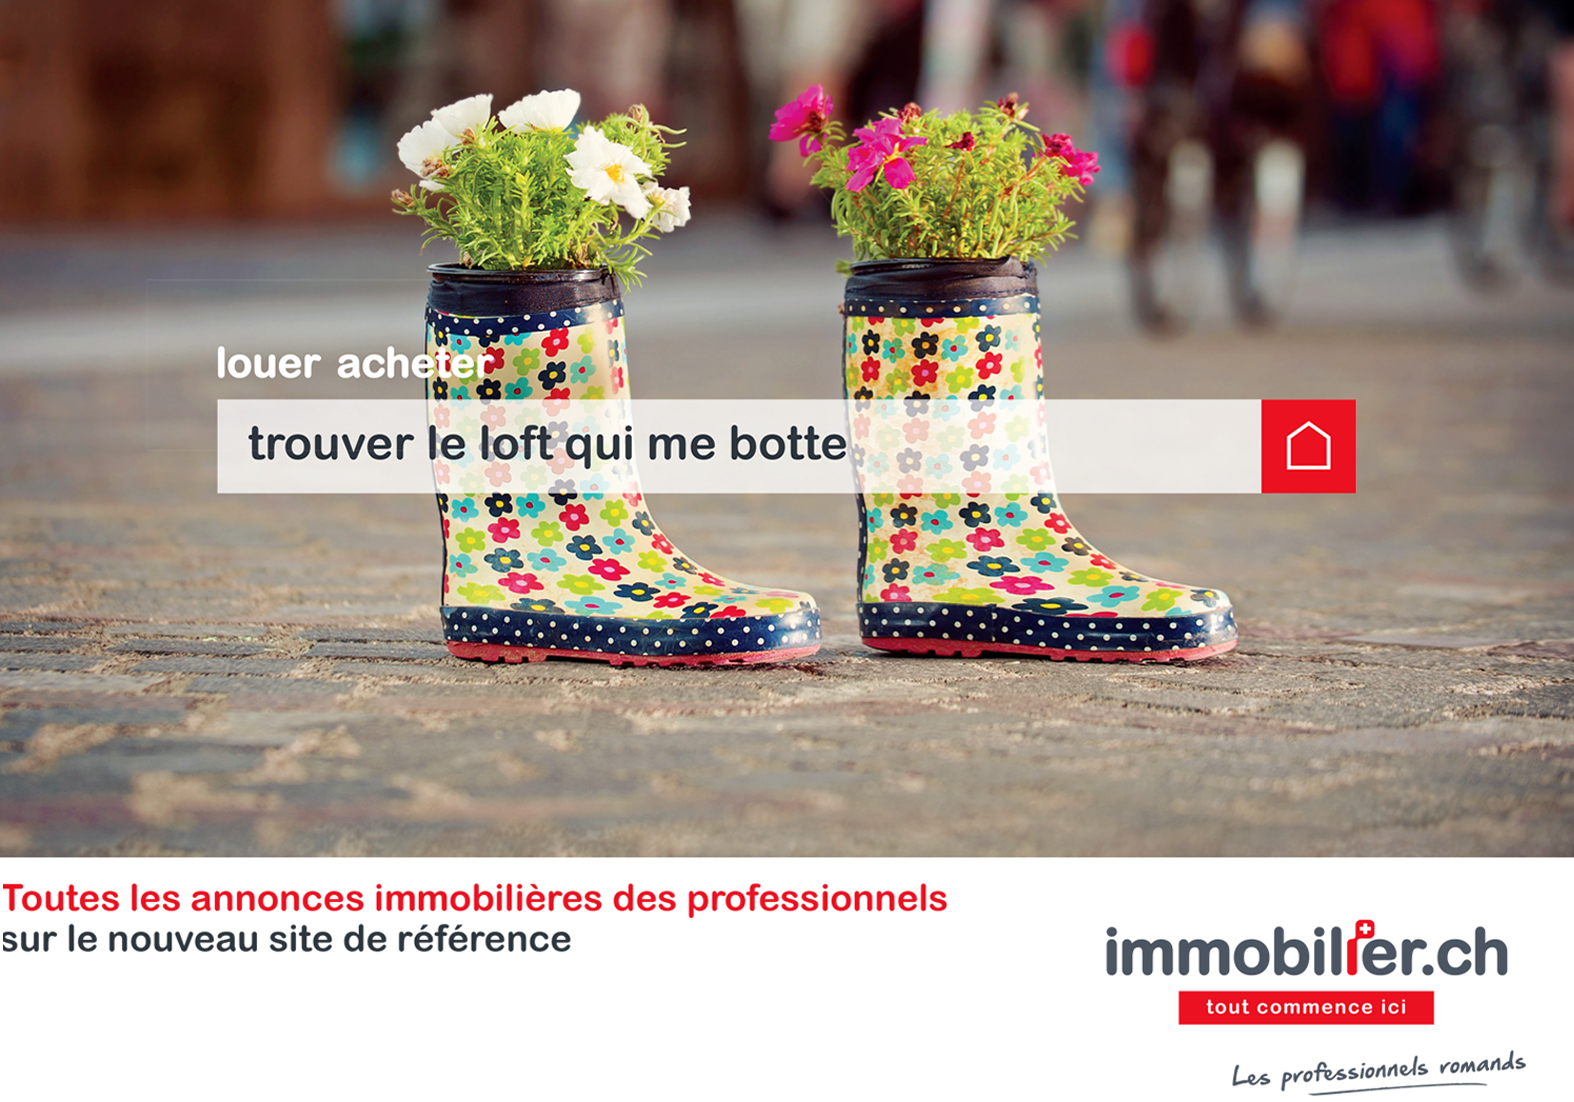 immobilier.ch